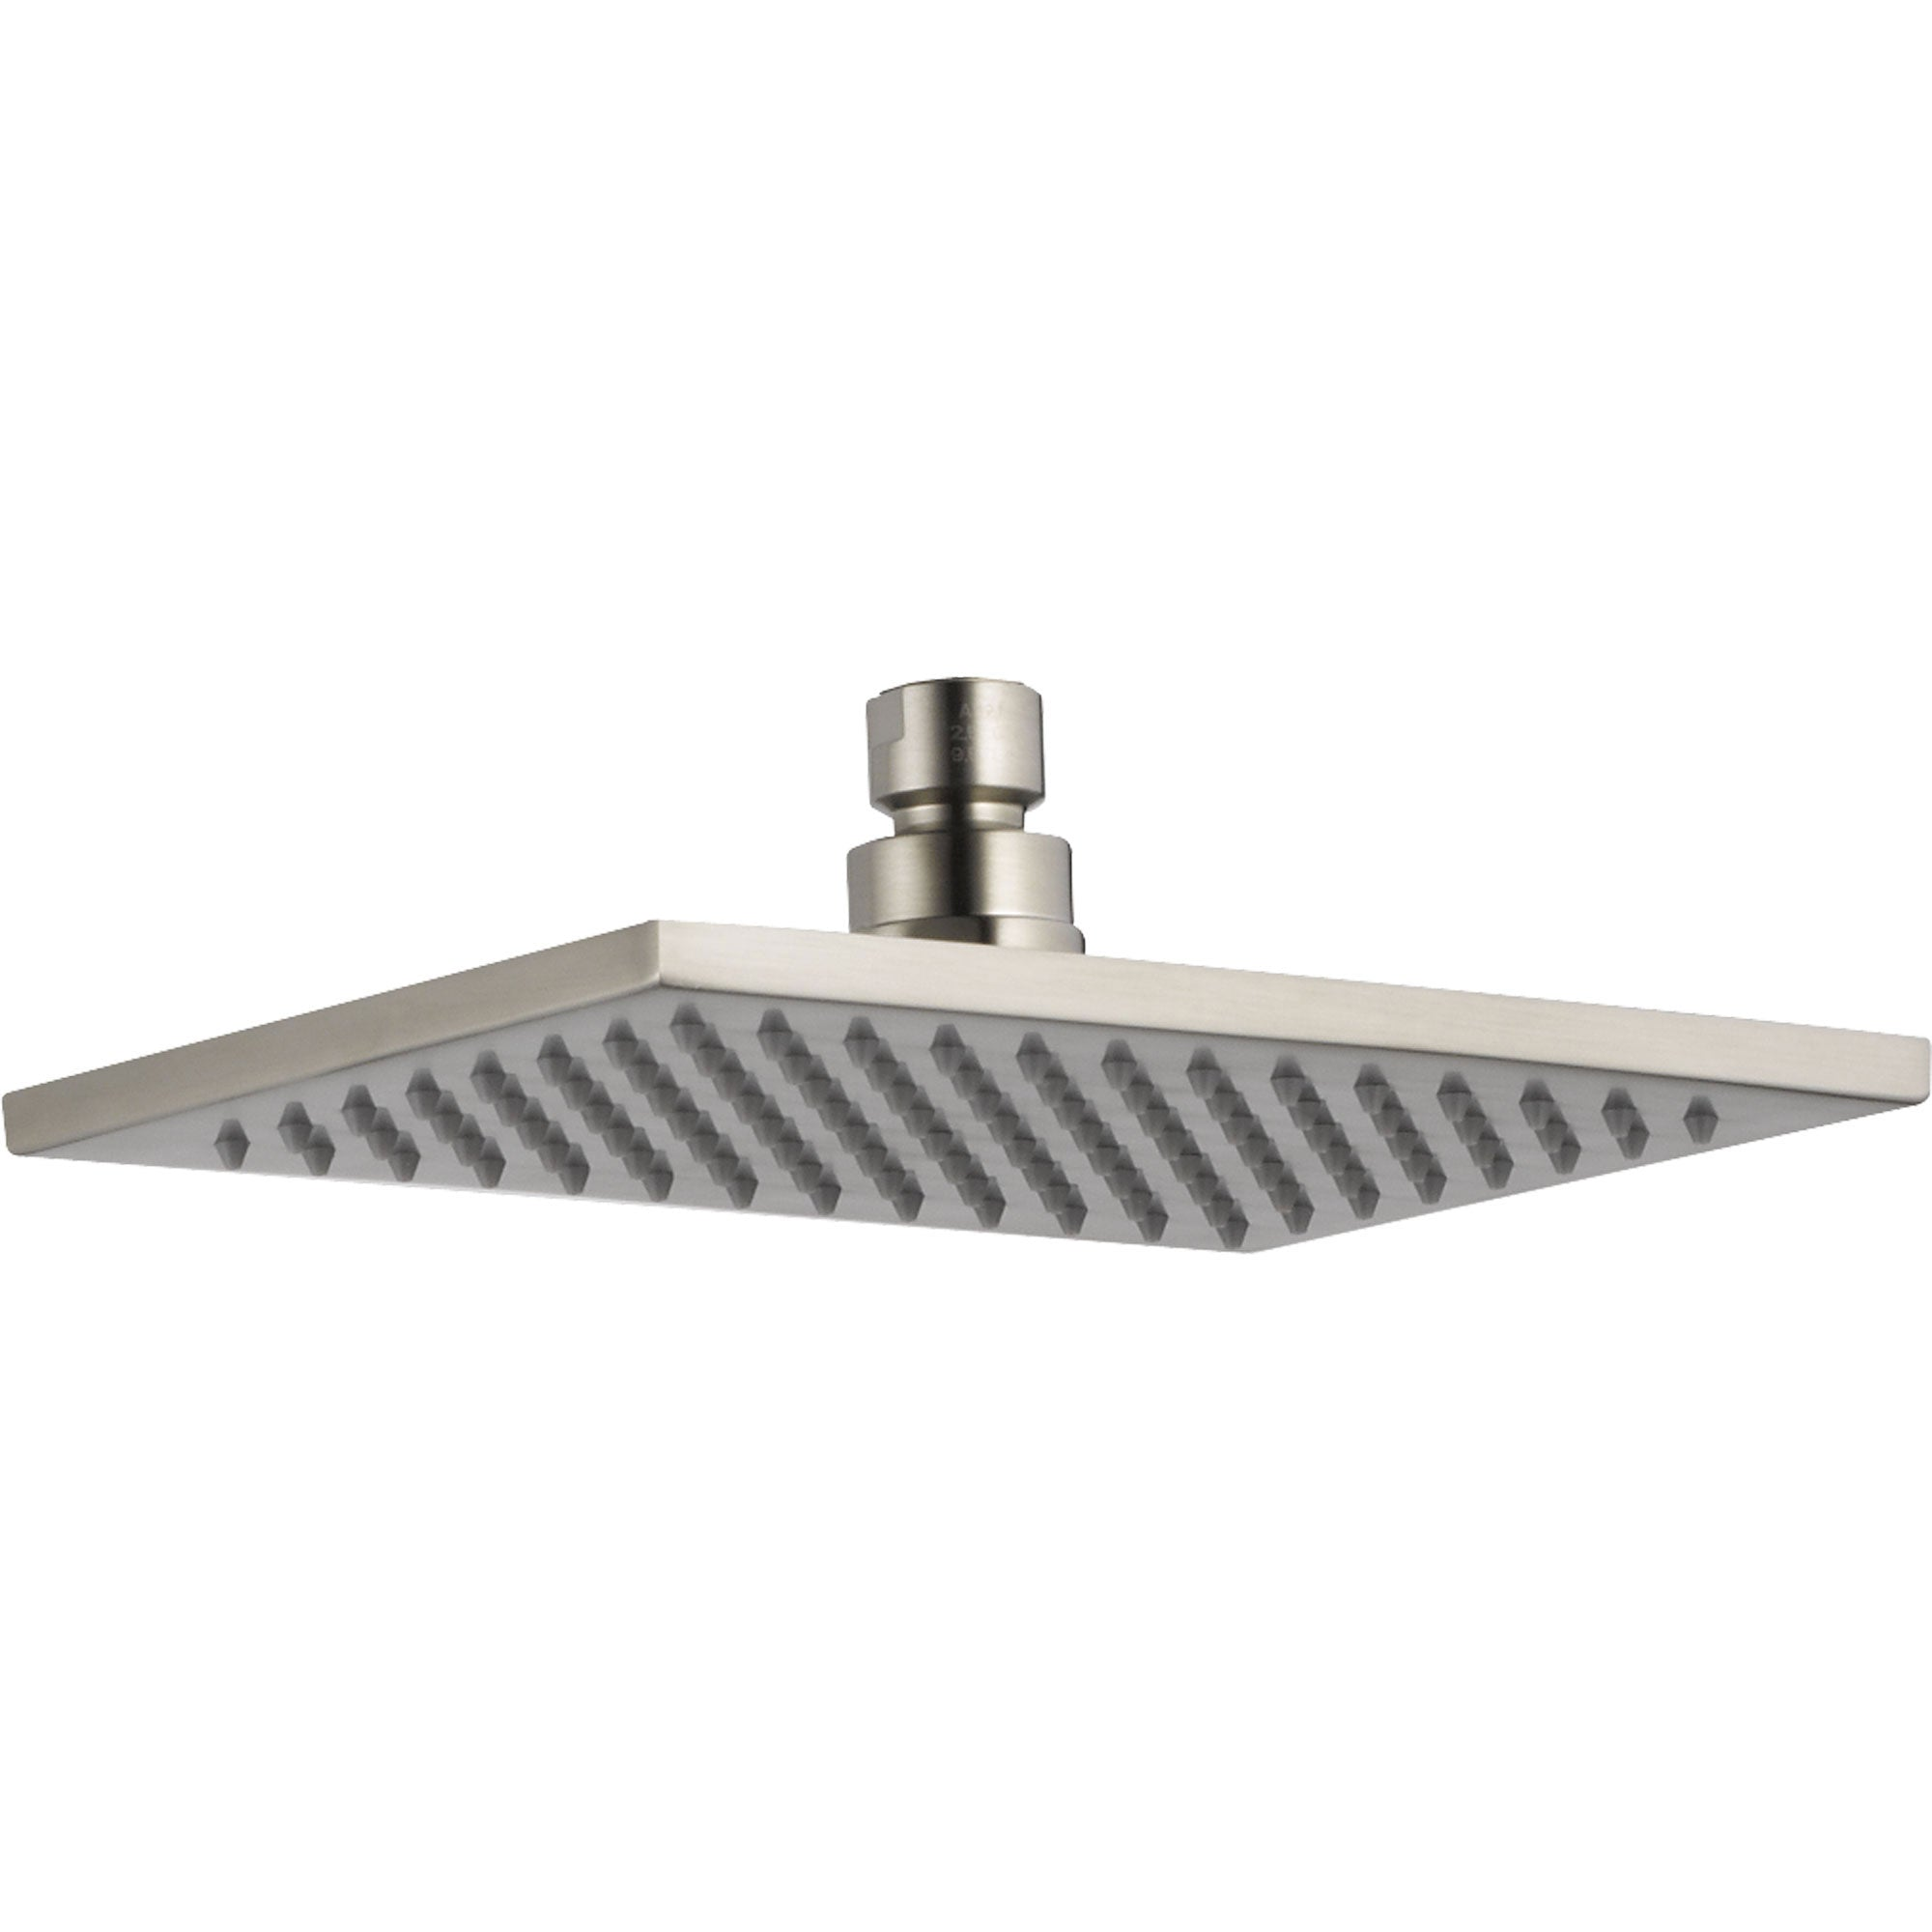 "Delta Vero Stainless Steel Finish Modern 8-5/8"" x 5-11/16"" Large Rectangular Showerhead 608886"